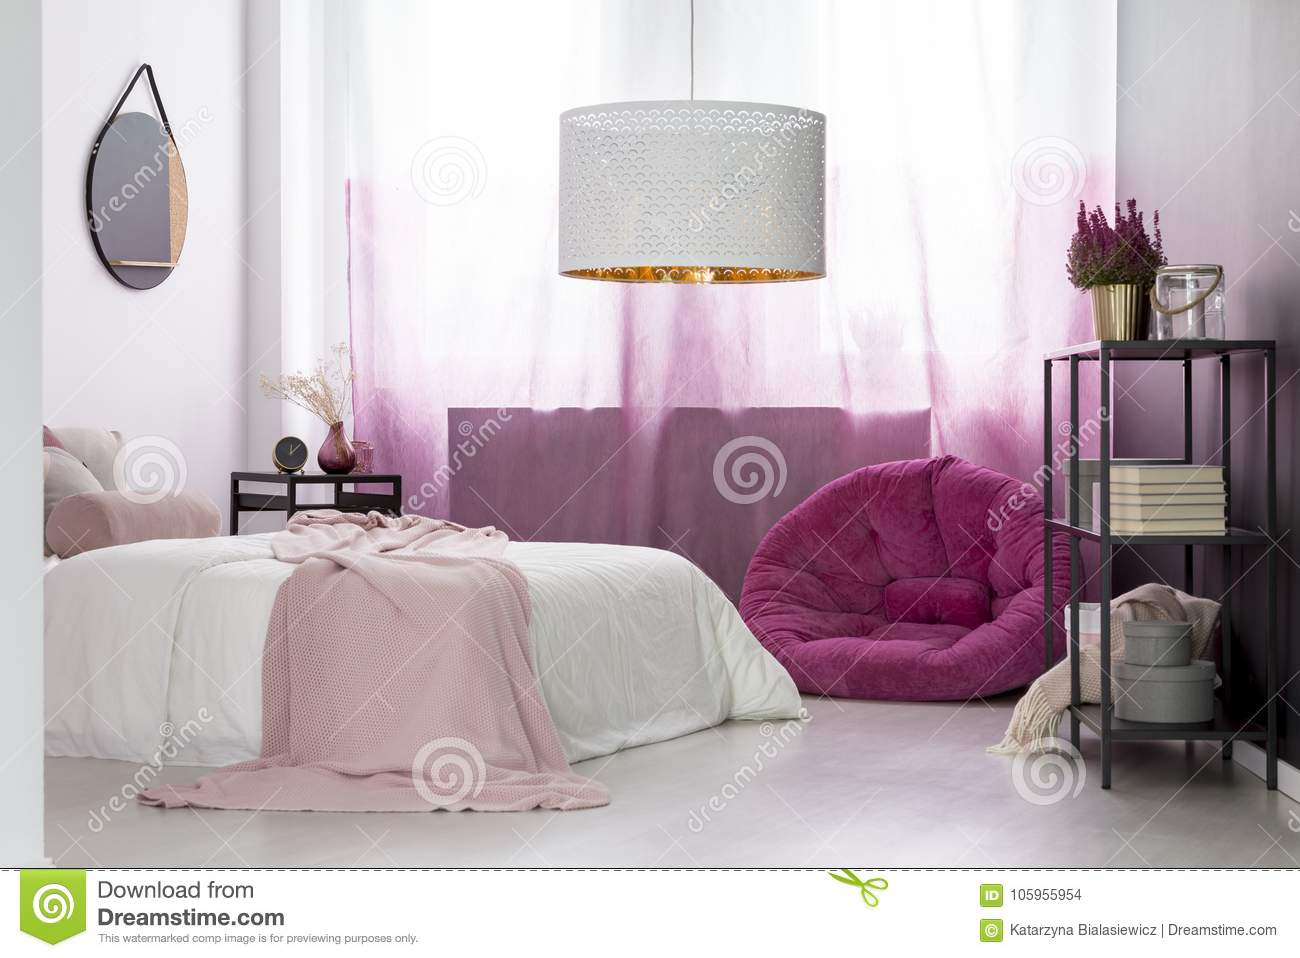 Lamp Boven Bed Lamp Boven Bed Ytb86 Agneswamu